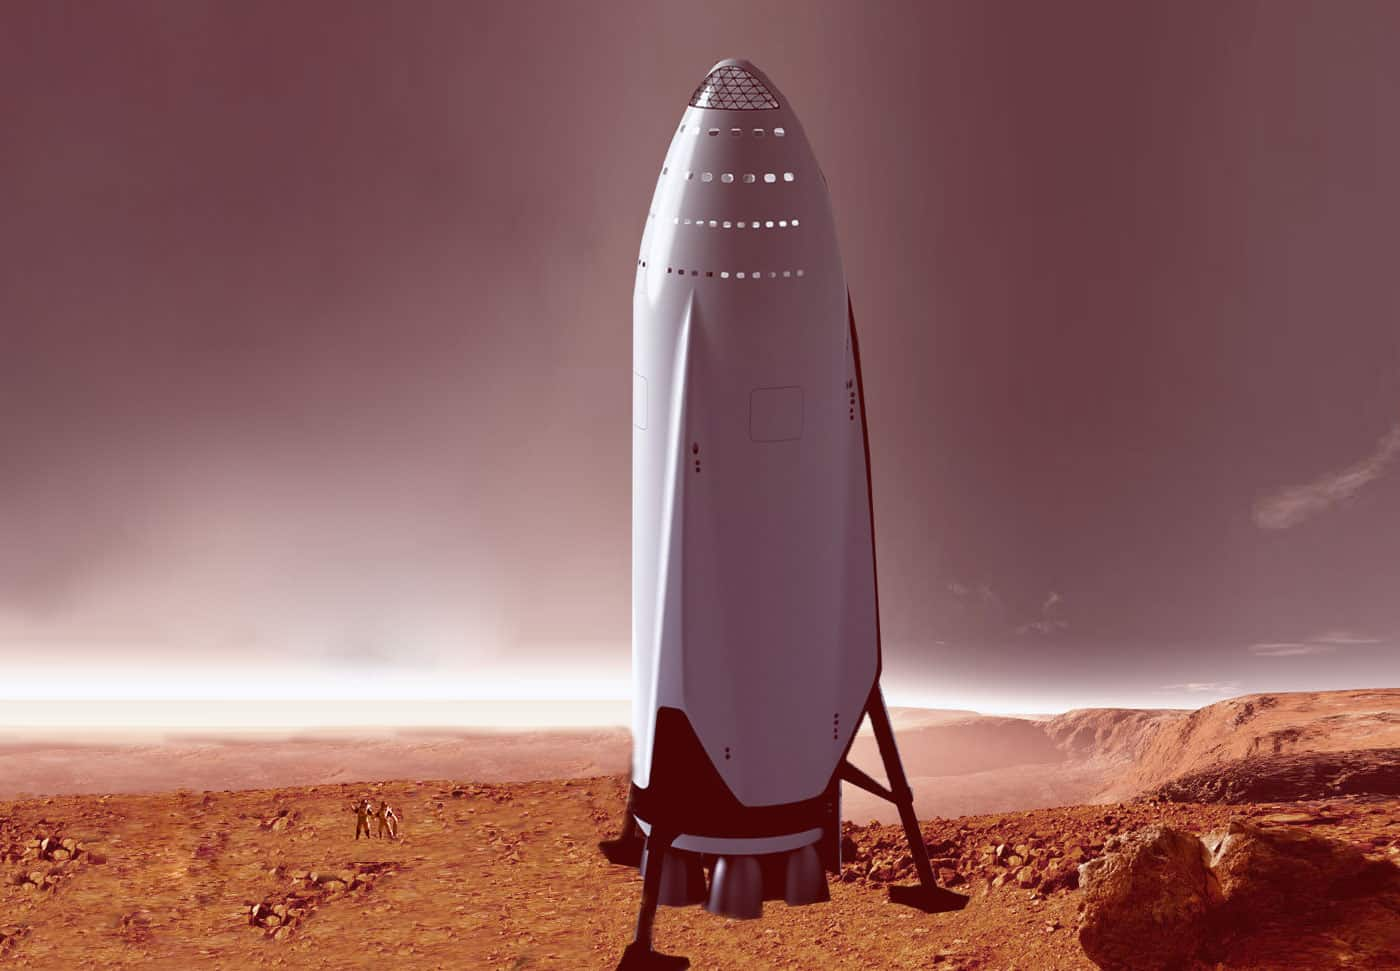 The Interplanetary Transport System (ITS) Elon Musk hopes will take us to Mars